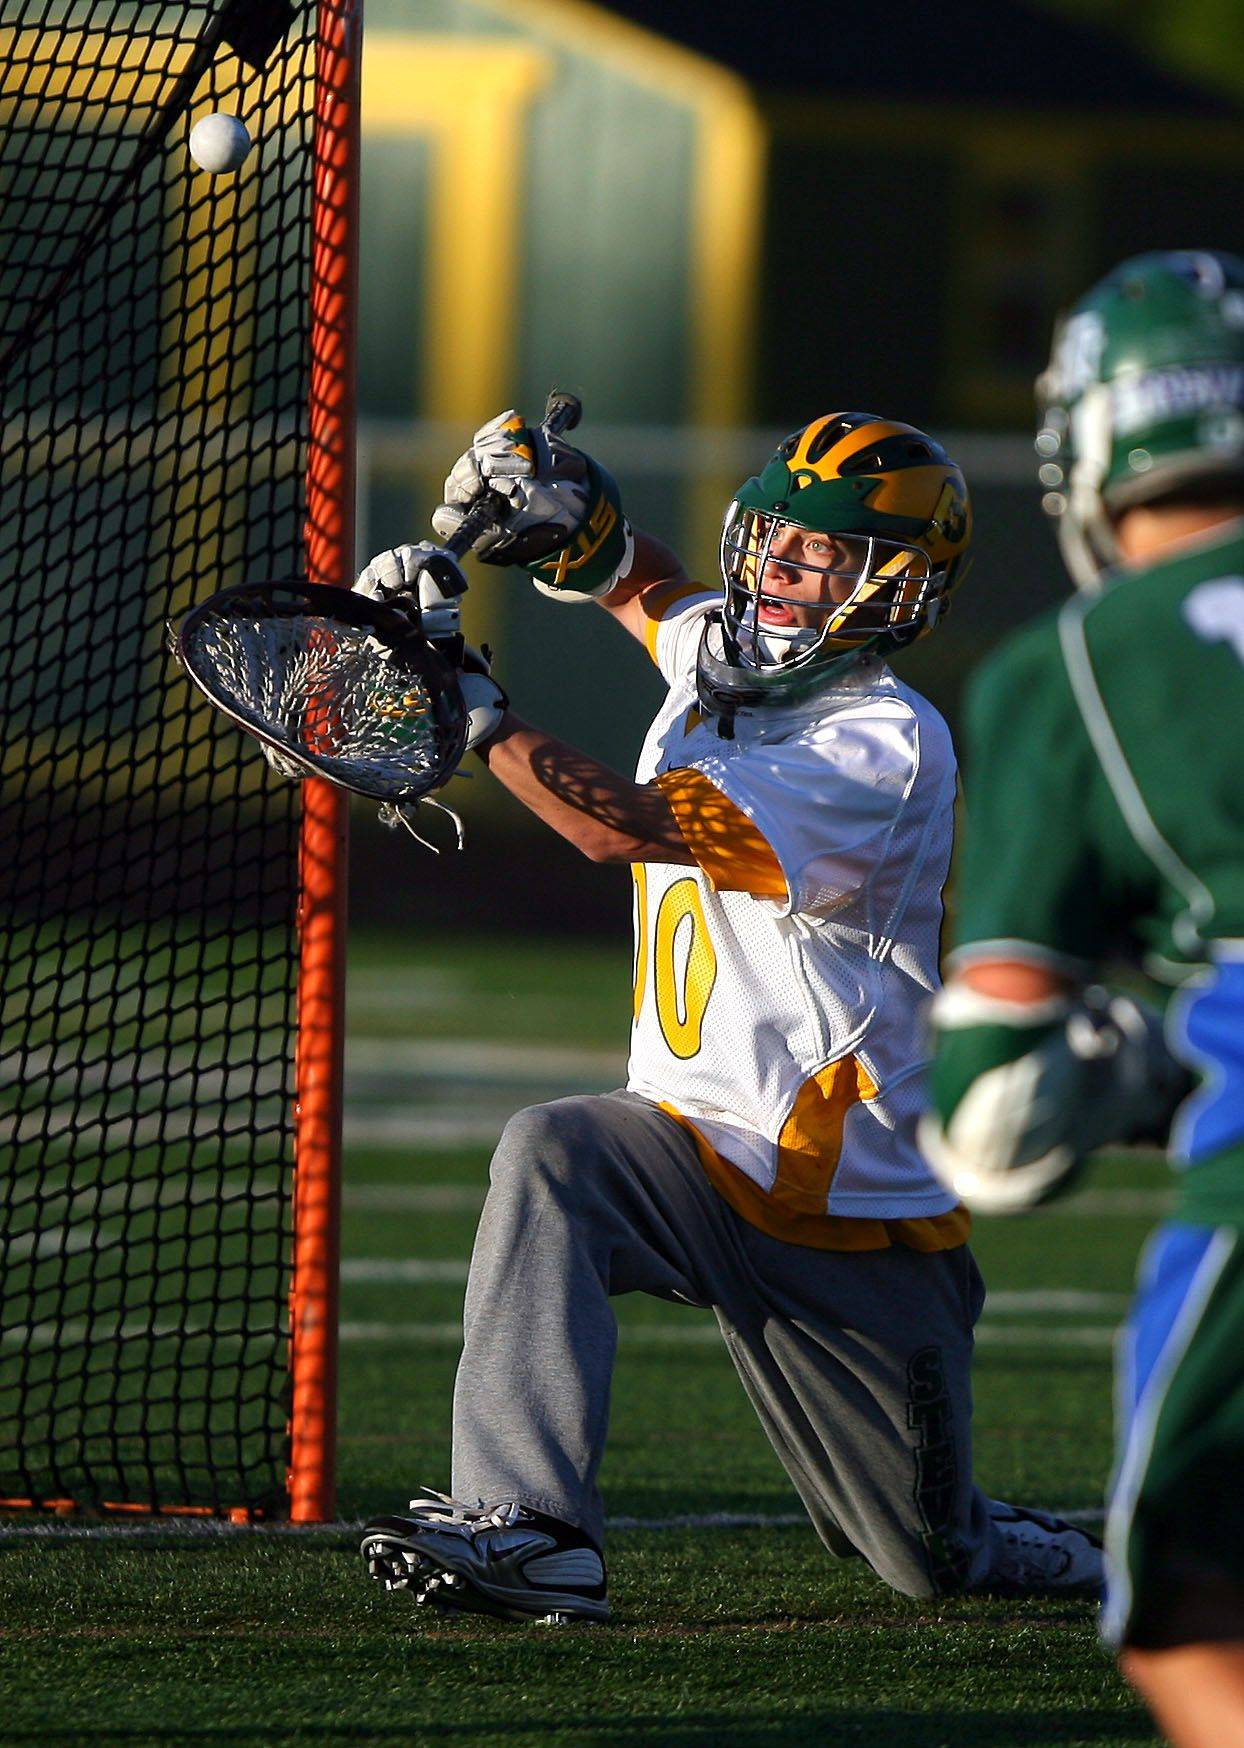 Stevenson's Max Huber makes a nice save during their game against New Trier Tuesday night in Lincolnshire.